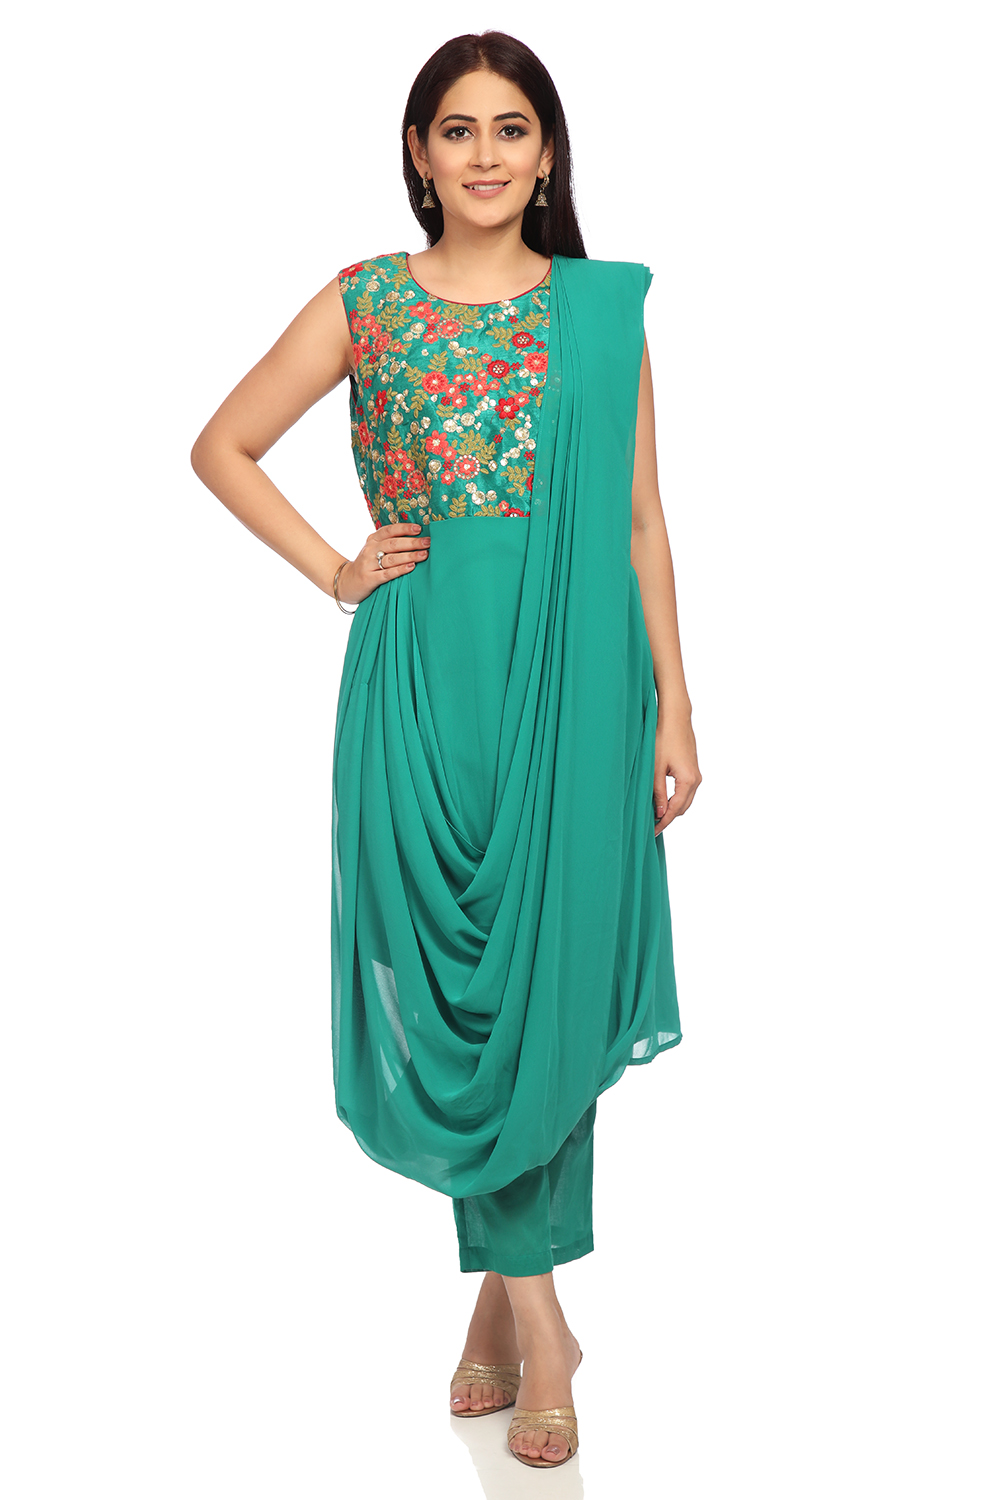 bf45648d8 Buy Online Green Art Silk Saree Kurtas With Cape for Women   Girls at Best  Prices in Biba India-SKD5